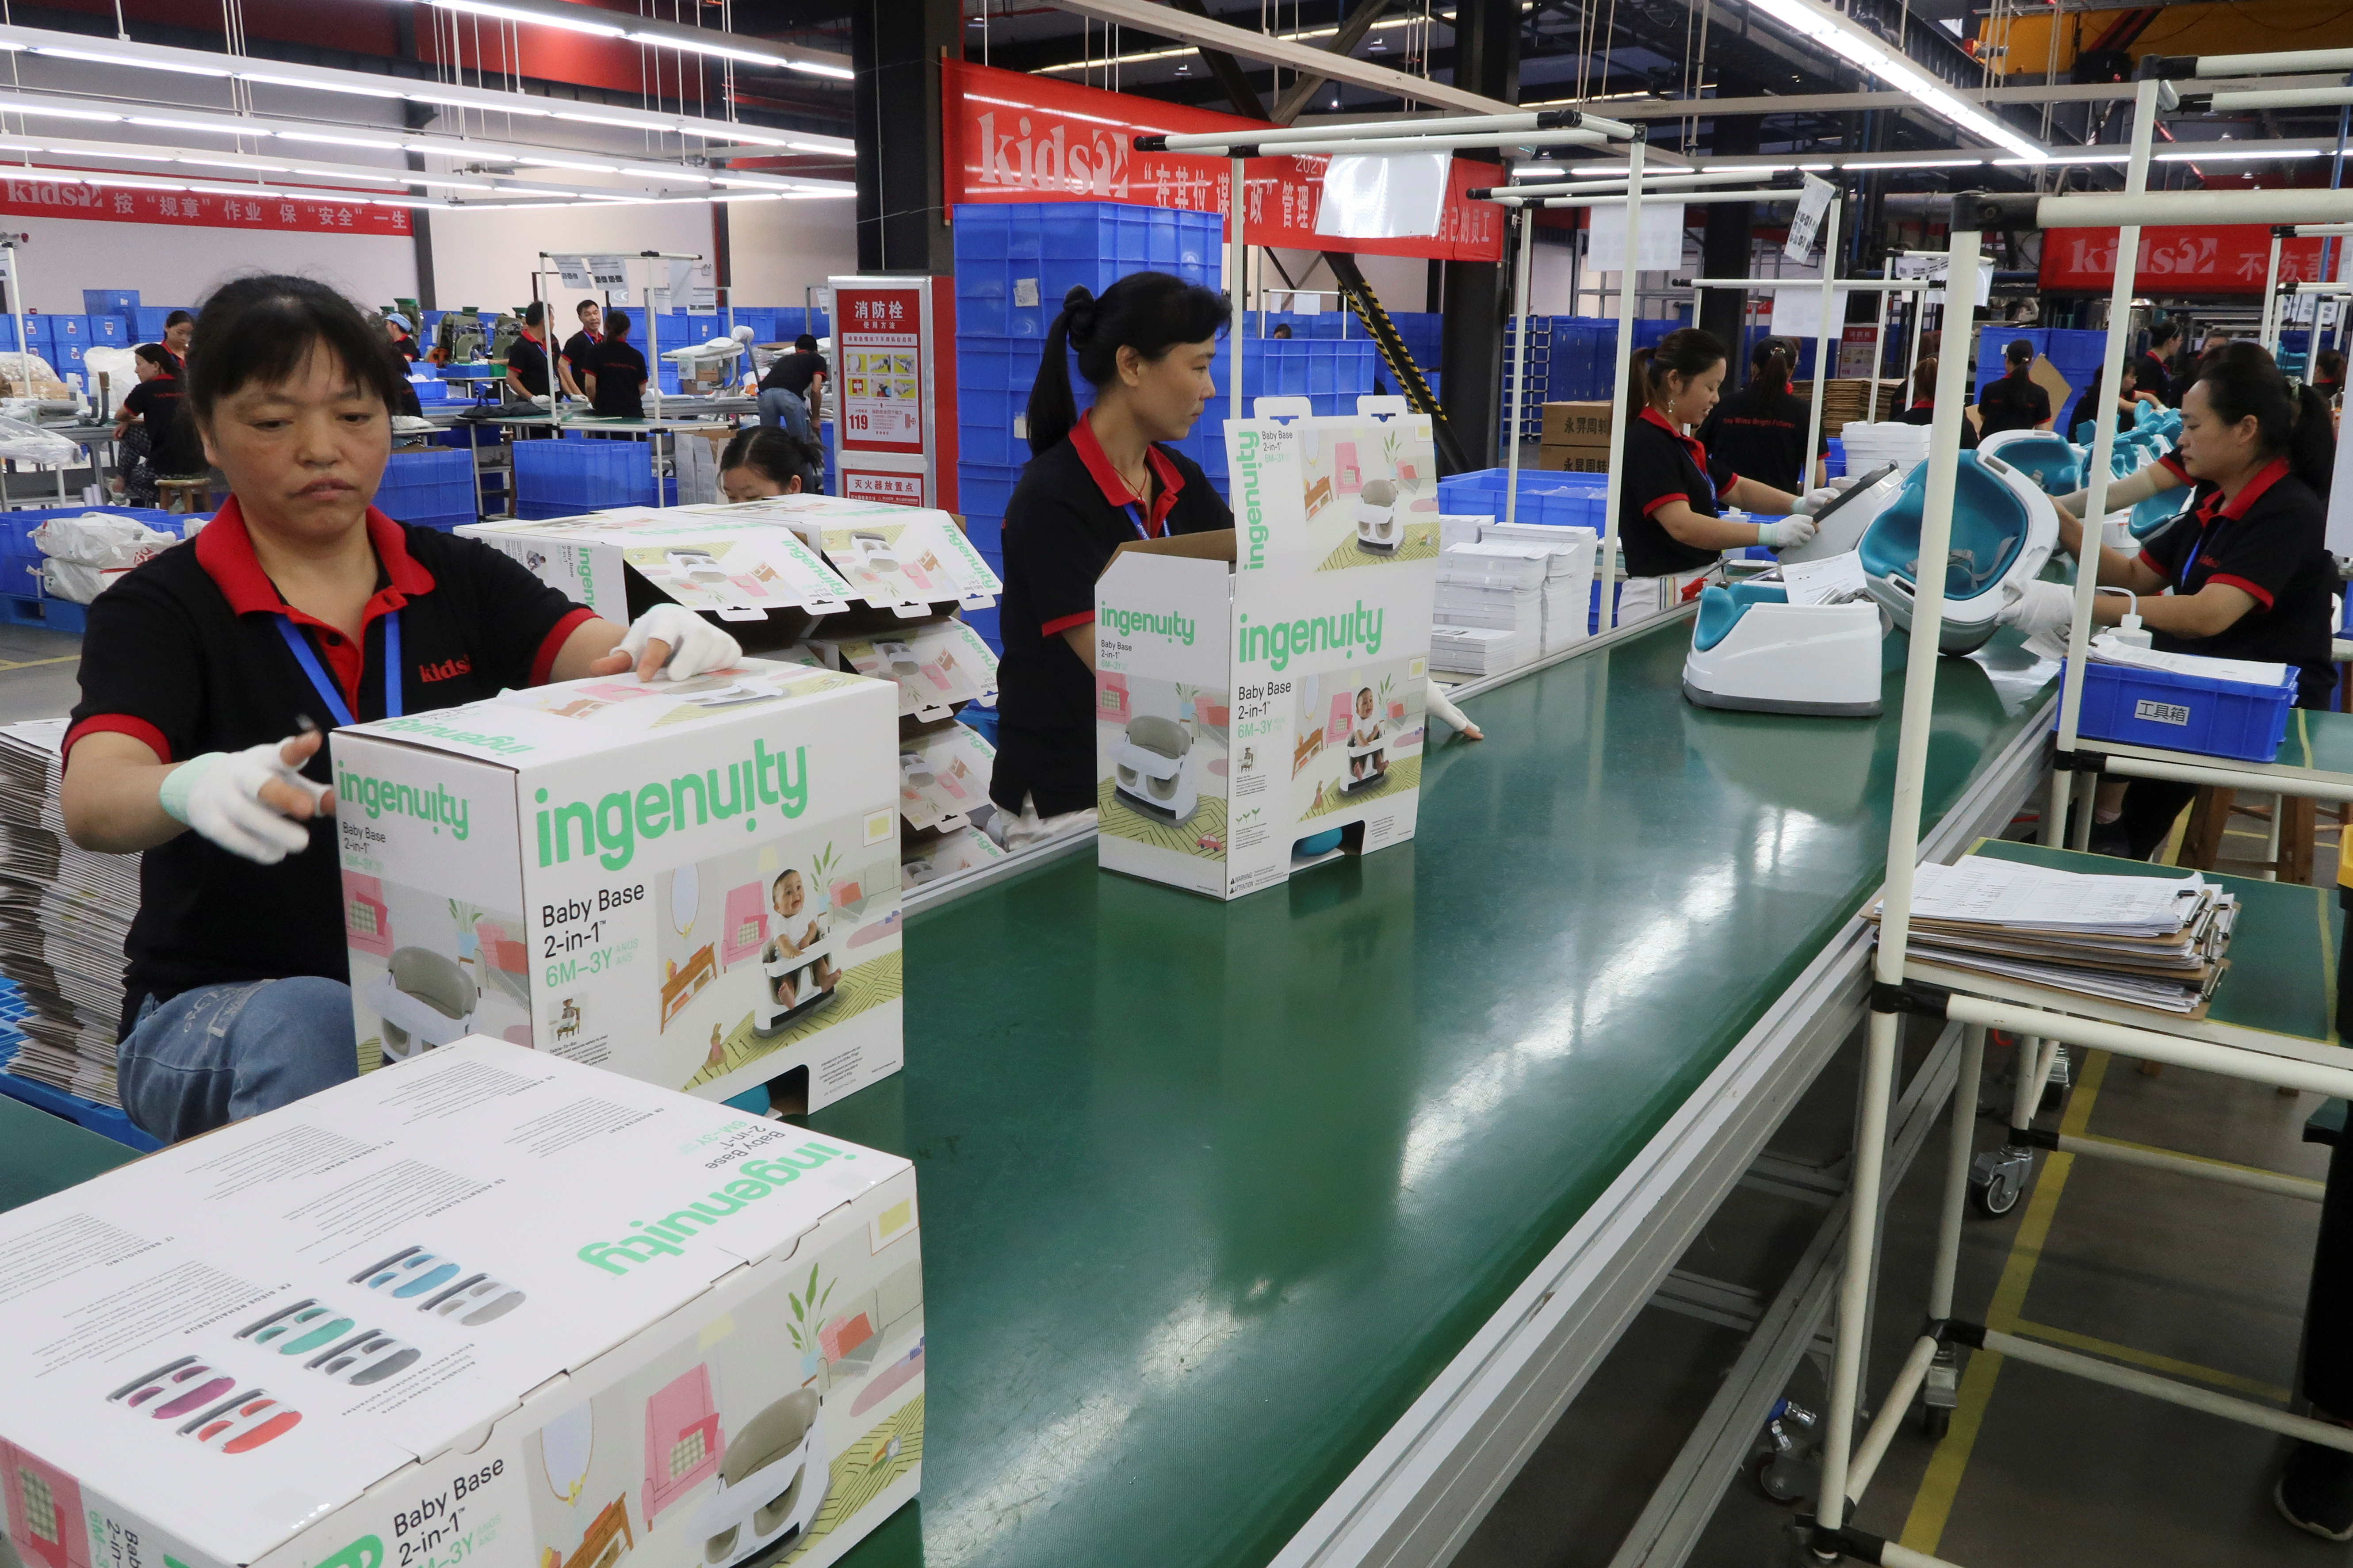 Employees work on the production line of American infant product and toy manufacturer Kids II Inc. at a factory in Jiujiang, Jiangxi province, China June 22, 2021. Picture taken June 22, 2021. REUTERS/Gabriel Crossley